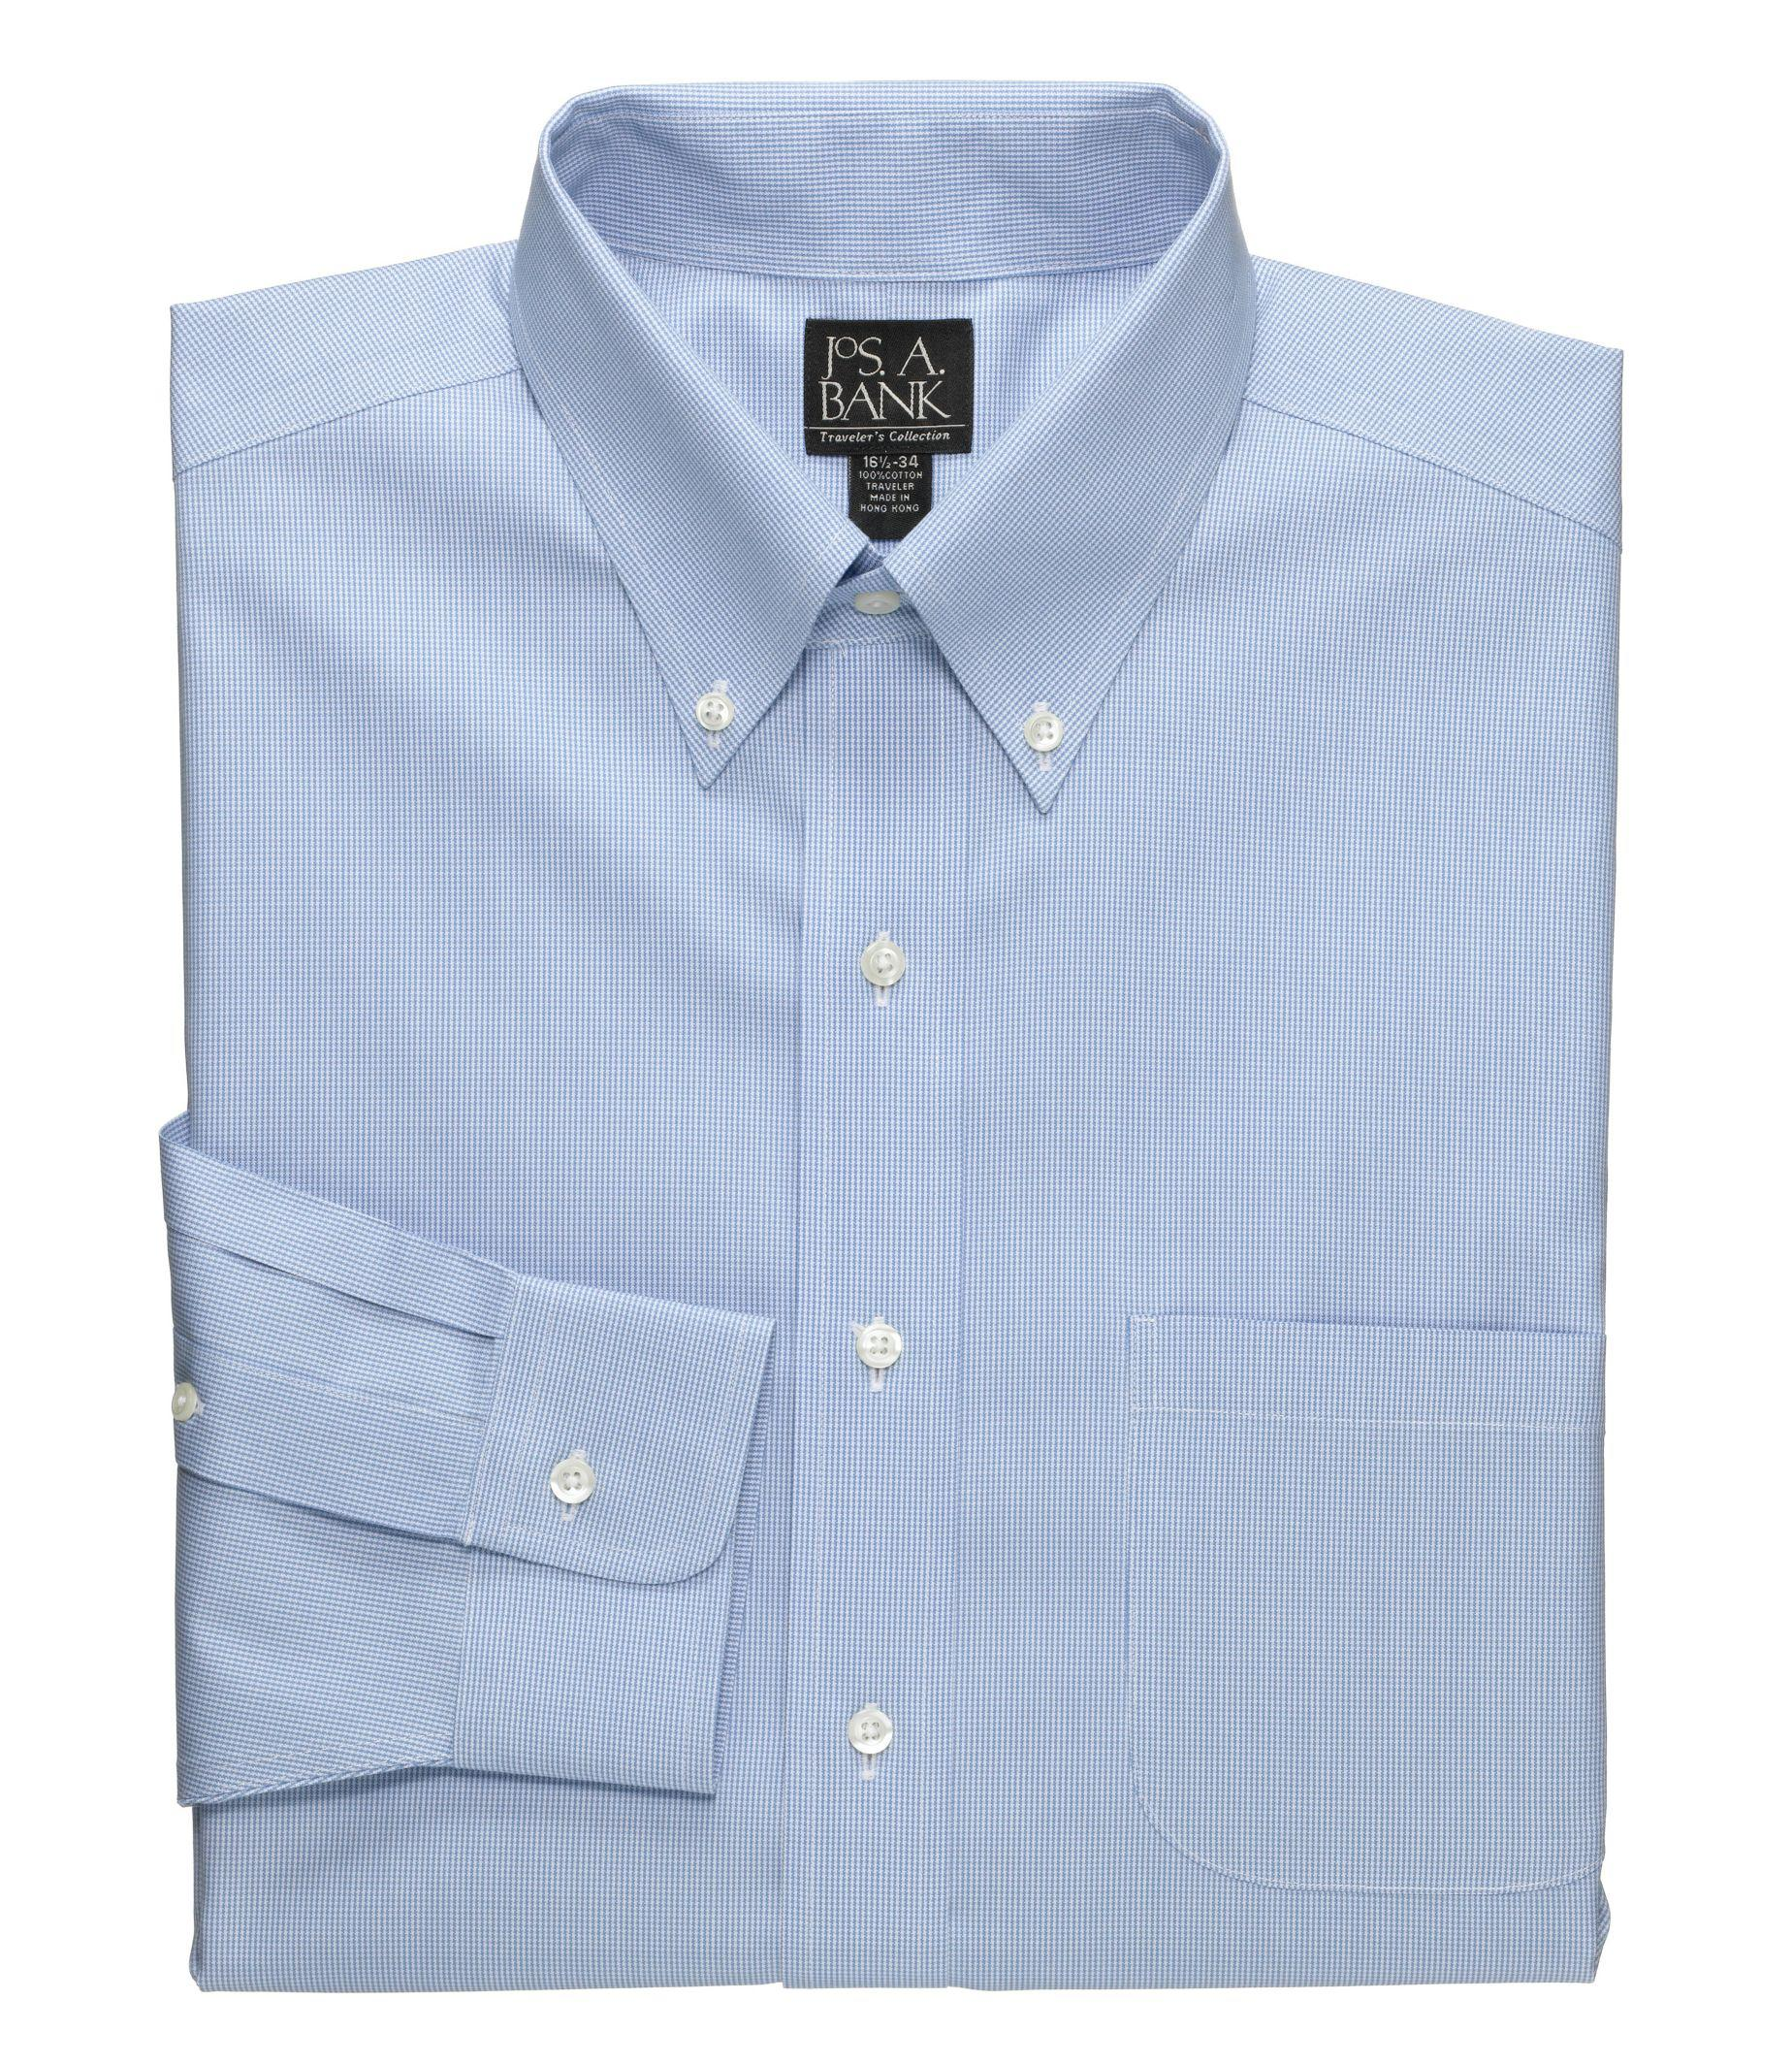 Lyst jos a bank traveler tailored fit button down for Tall collar dress shirts